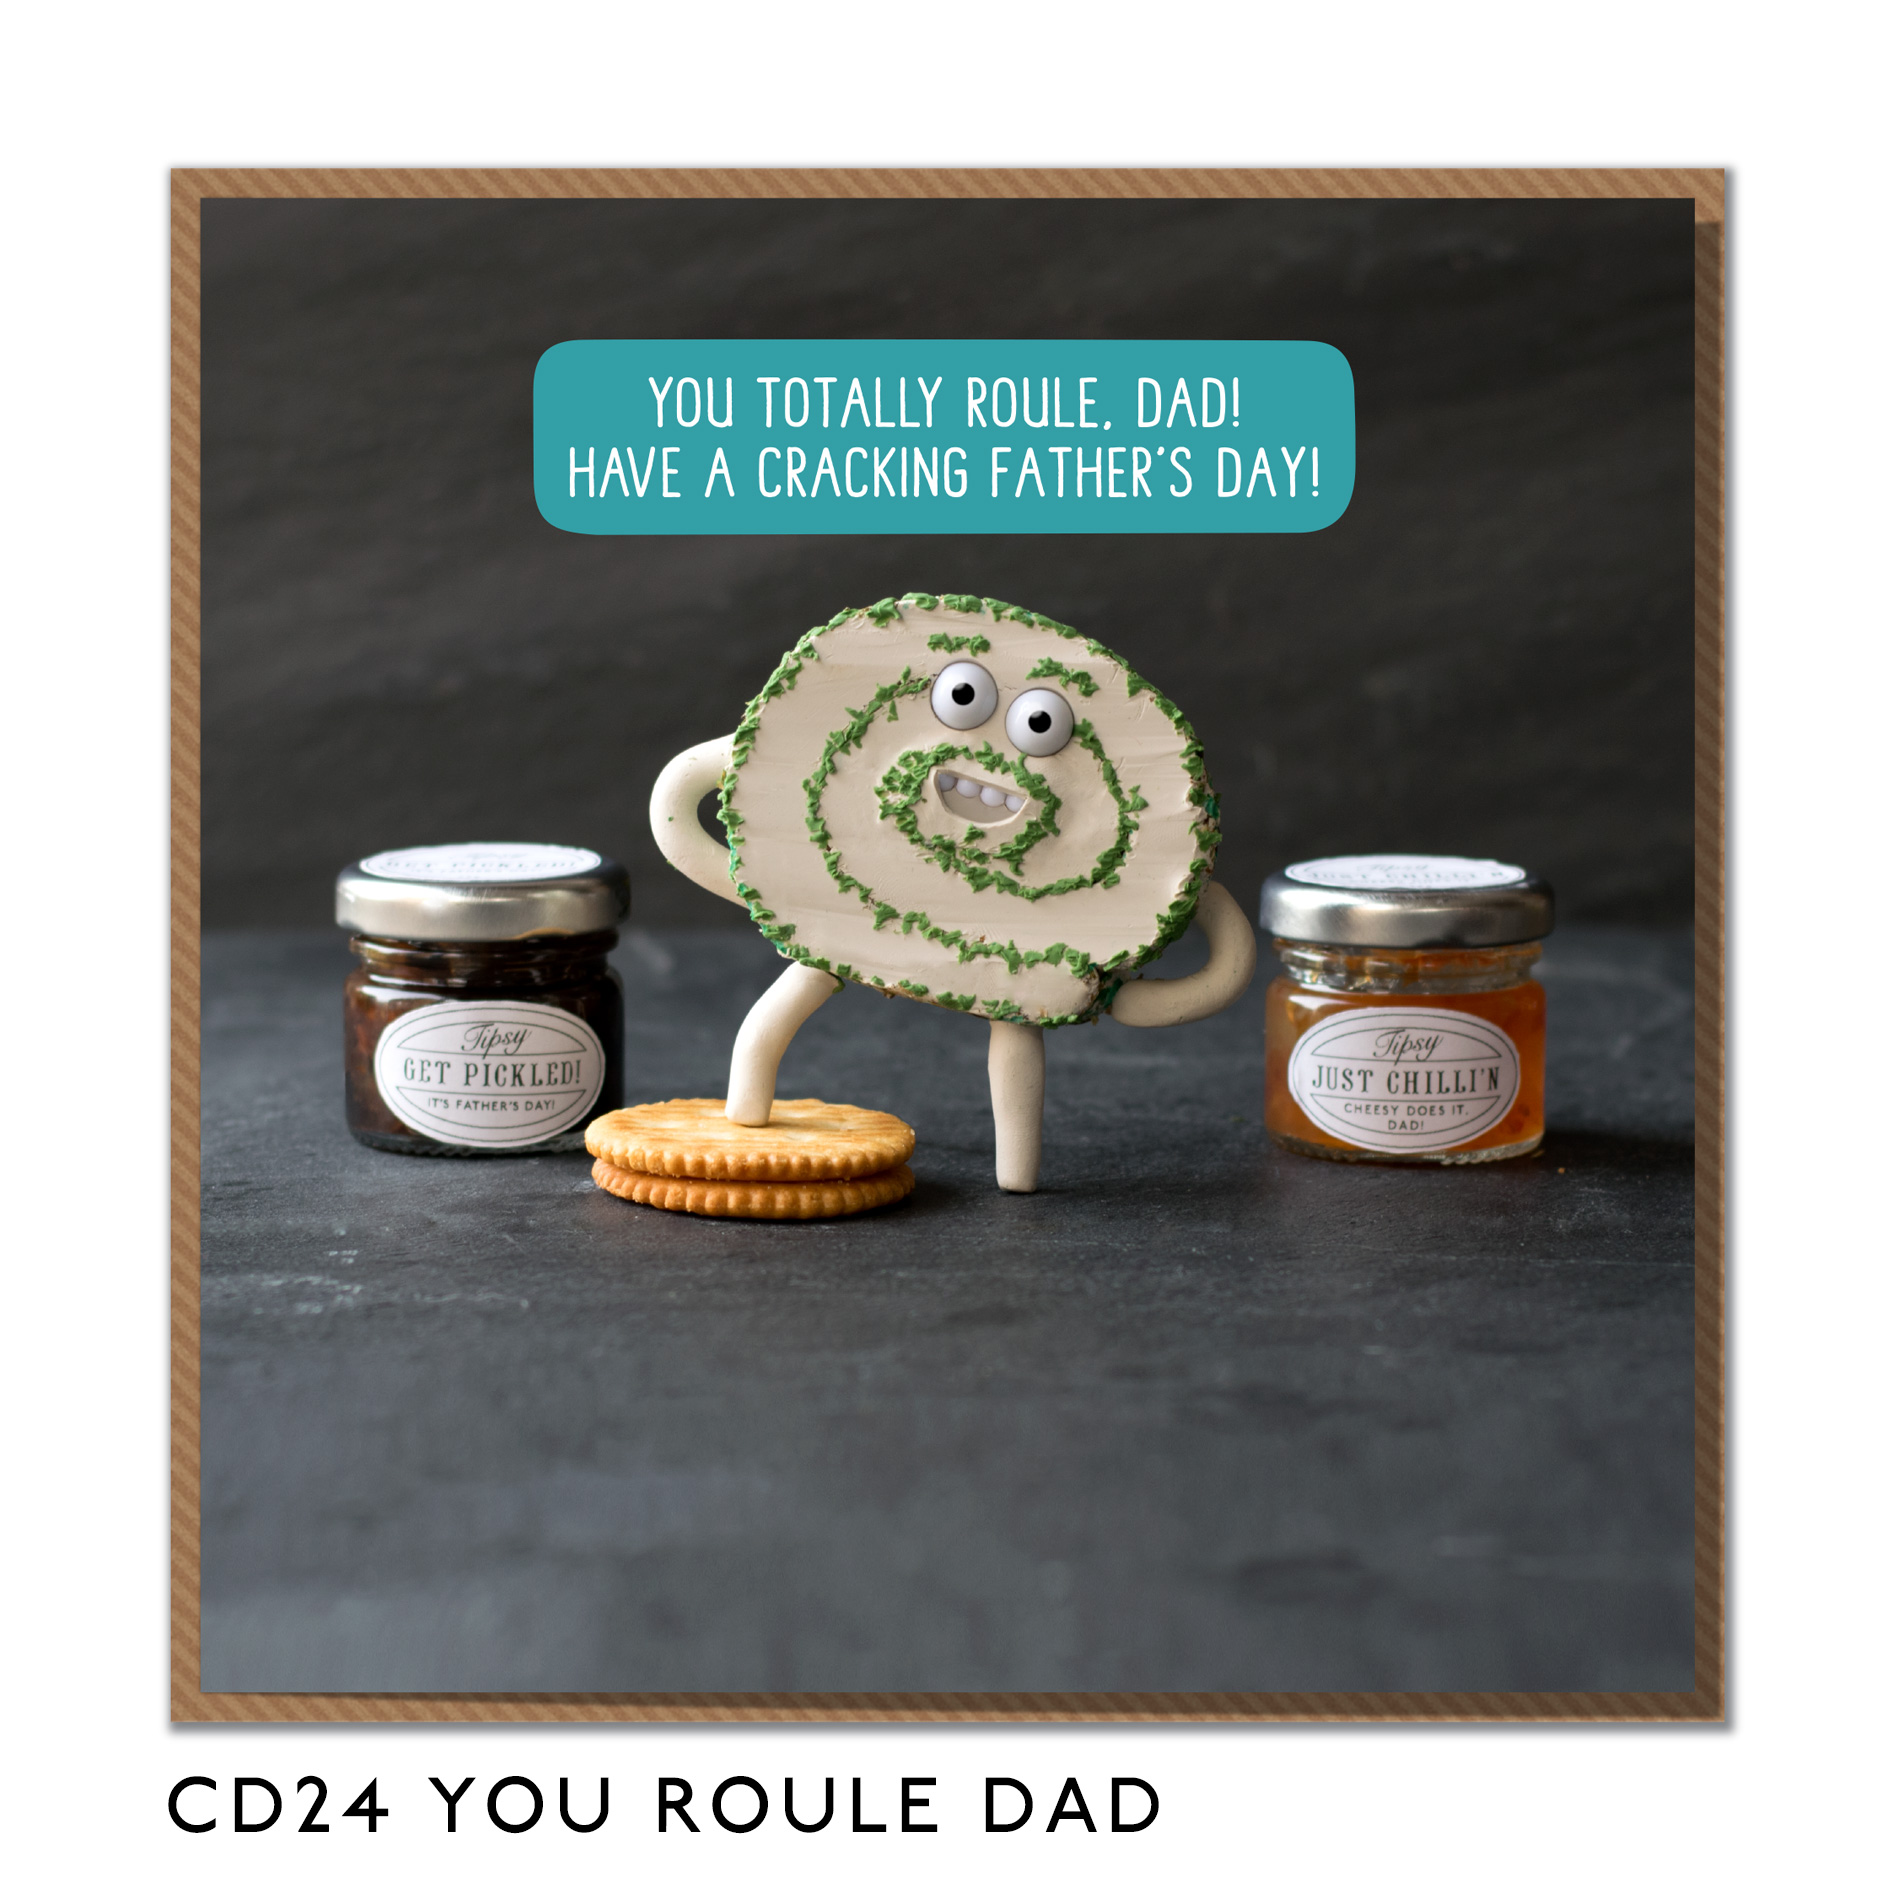 CD24-YOU-ROULE-DAD.jpg